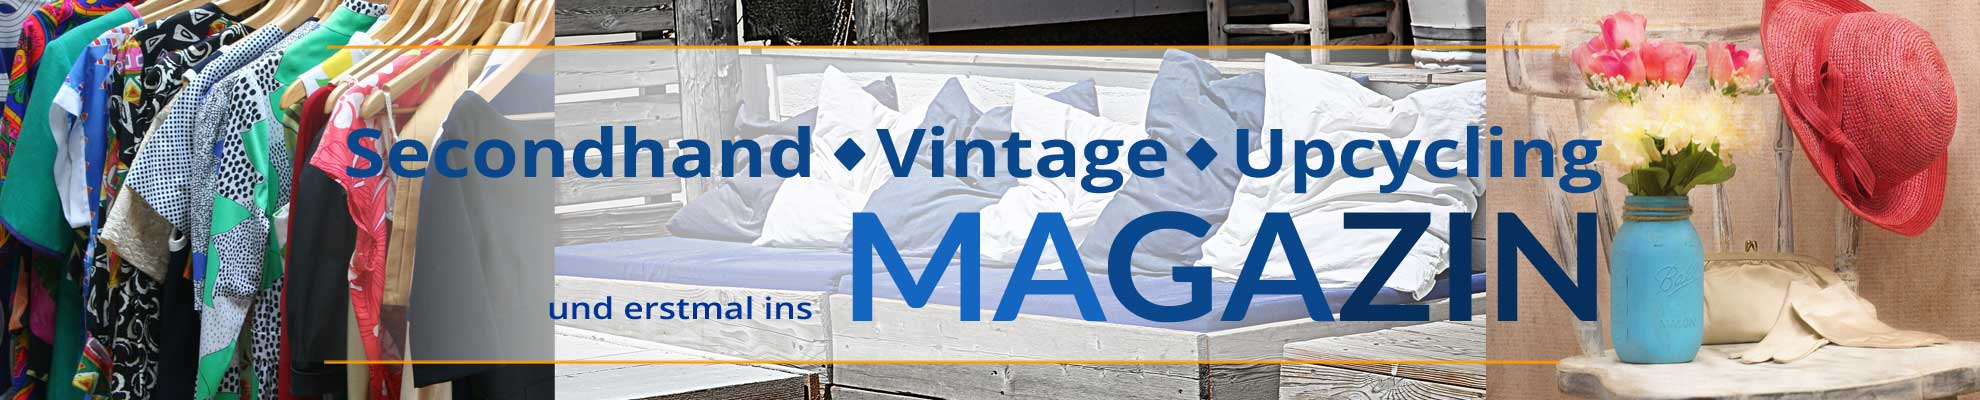 Magazin Halsenbach - Upcycling Secondhand